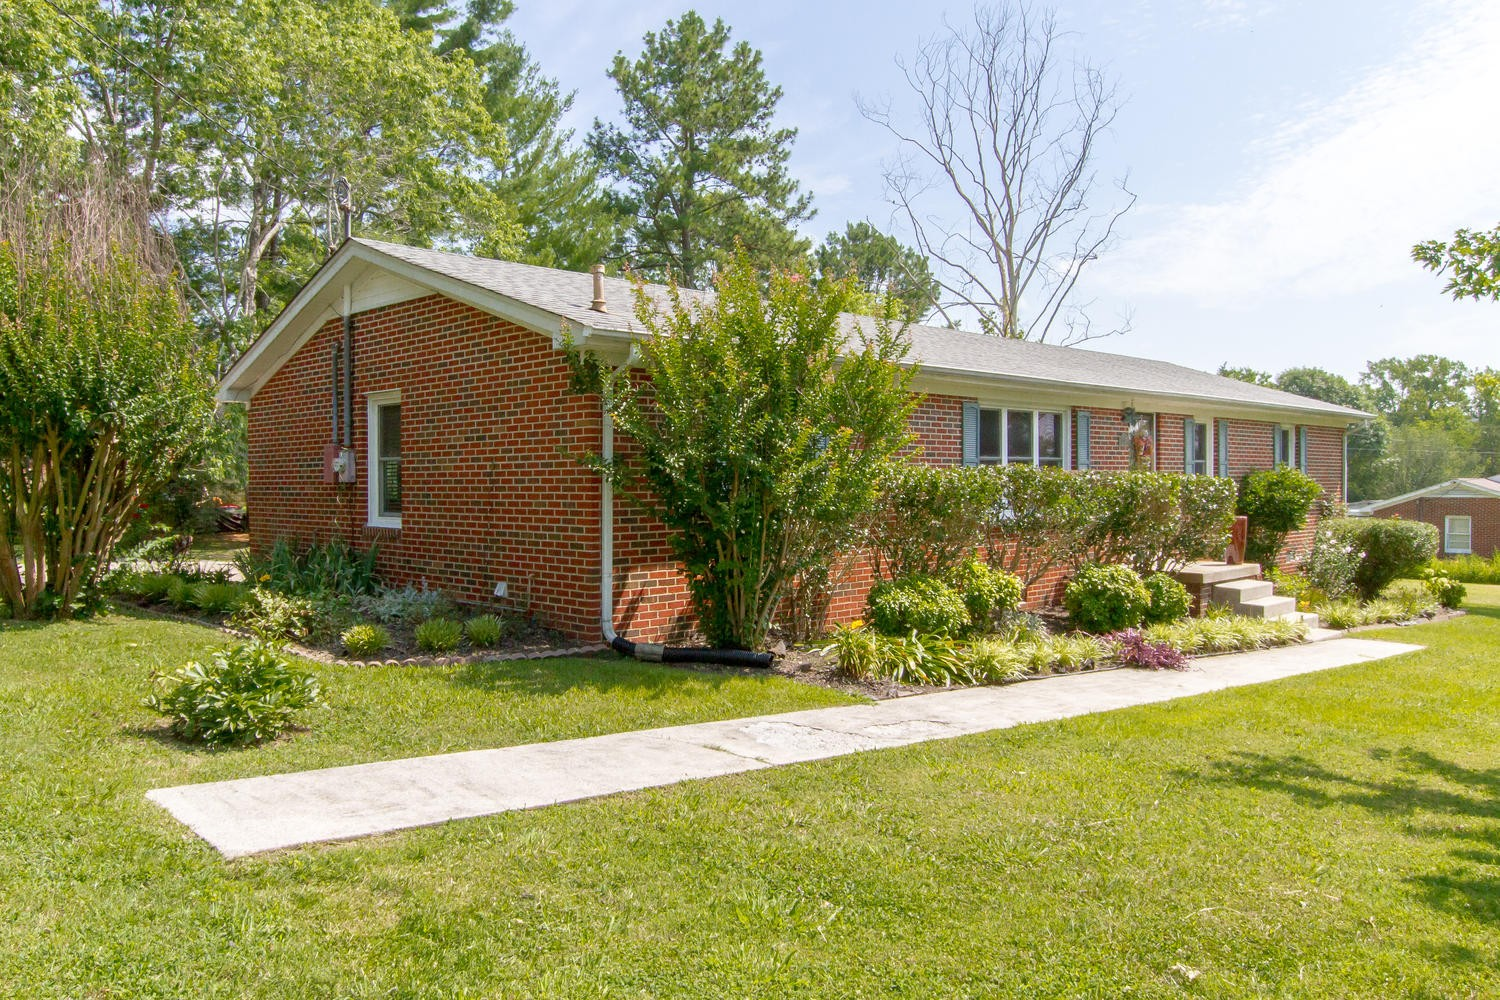 105 Wallace St Property Photo - Woodbury, TN real estate listing